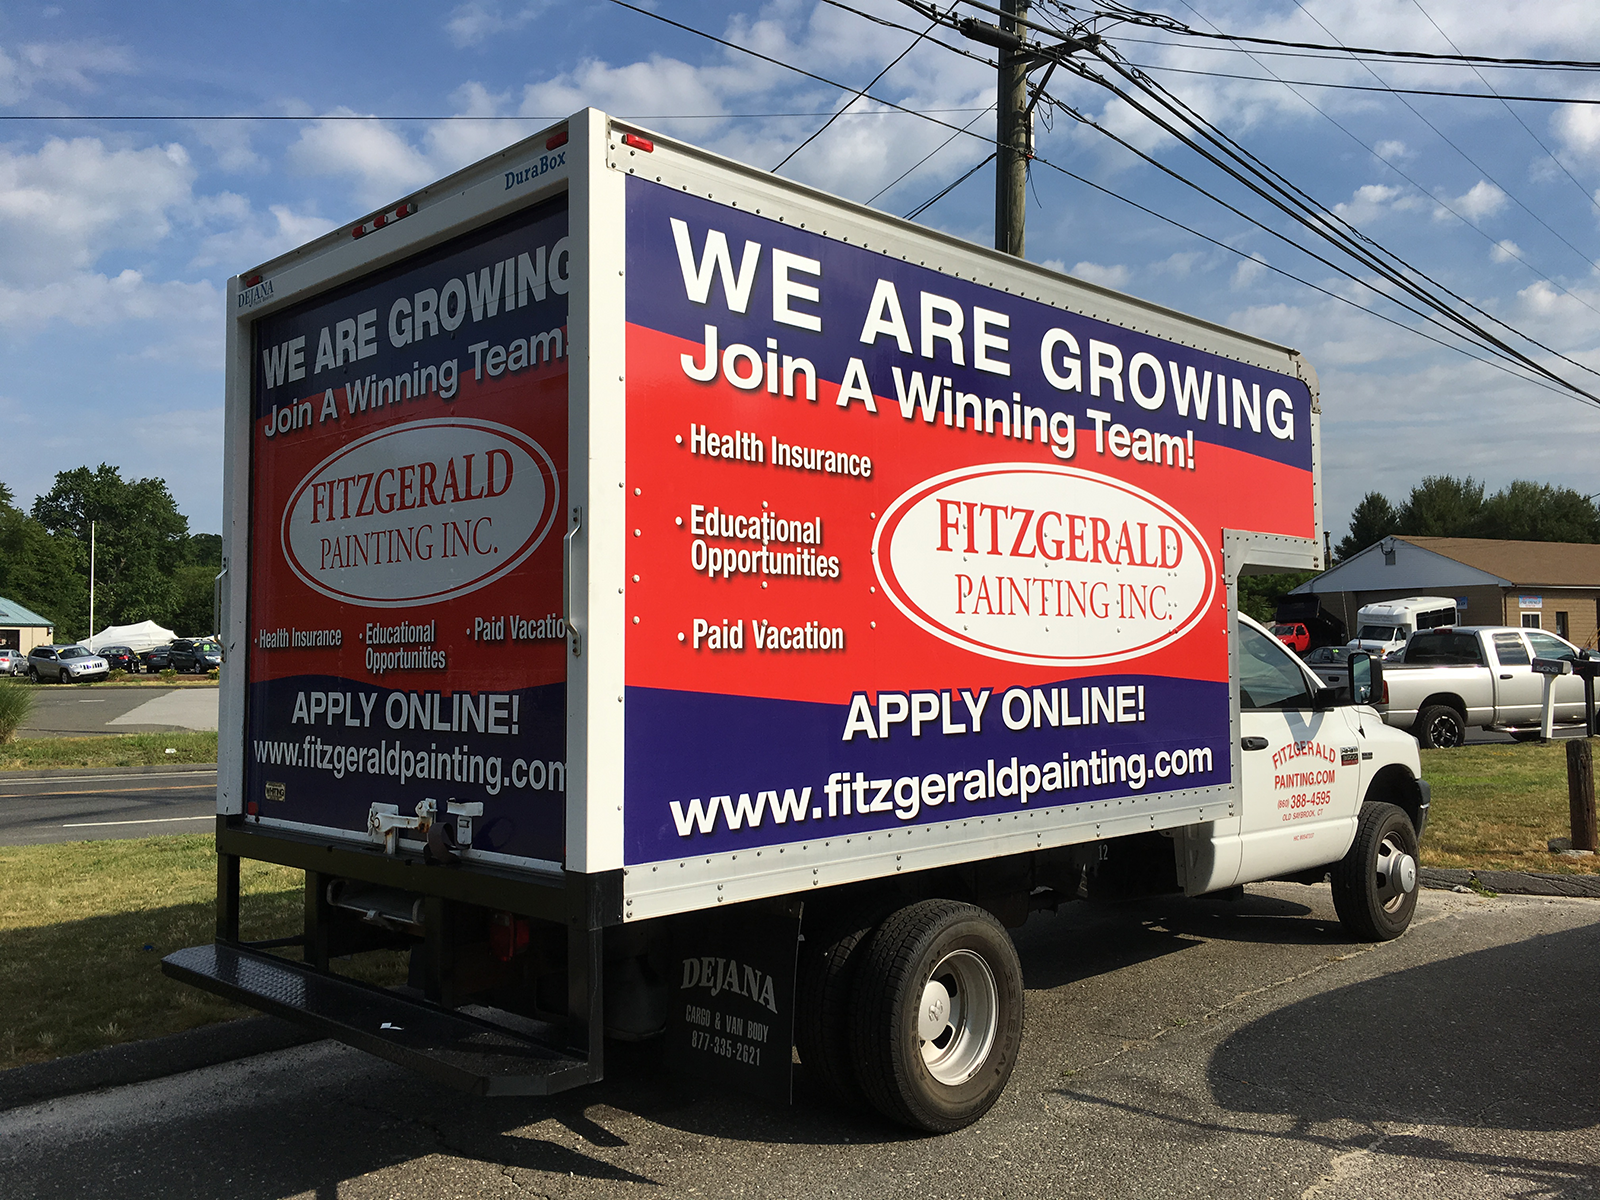 Box Truck Ad for Fitzgerald Painting Inc.